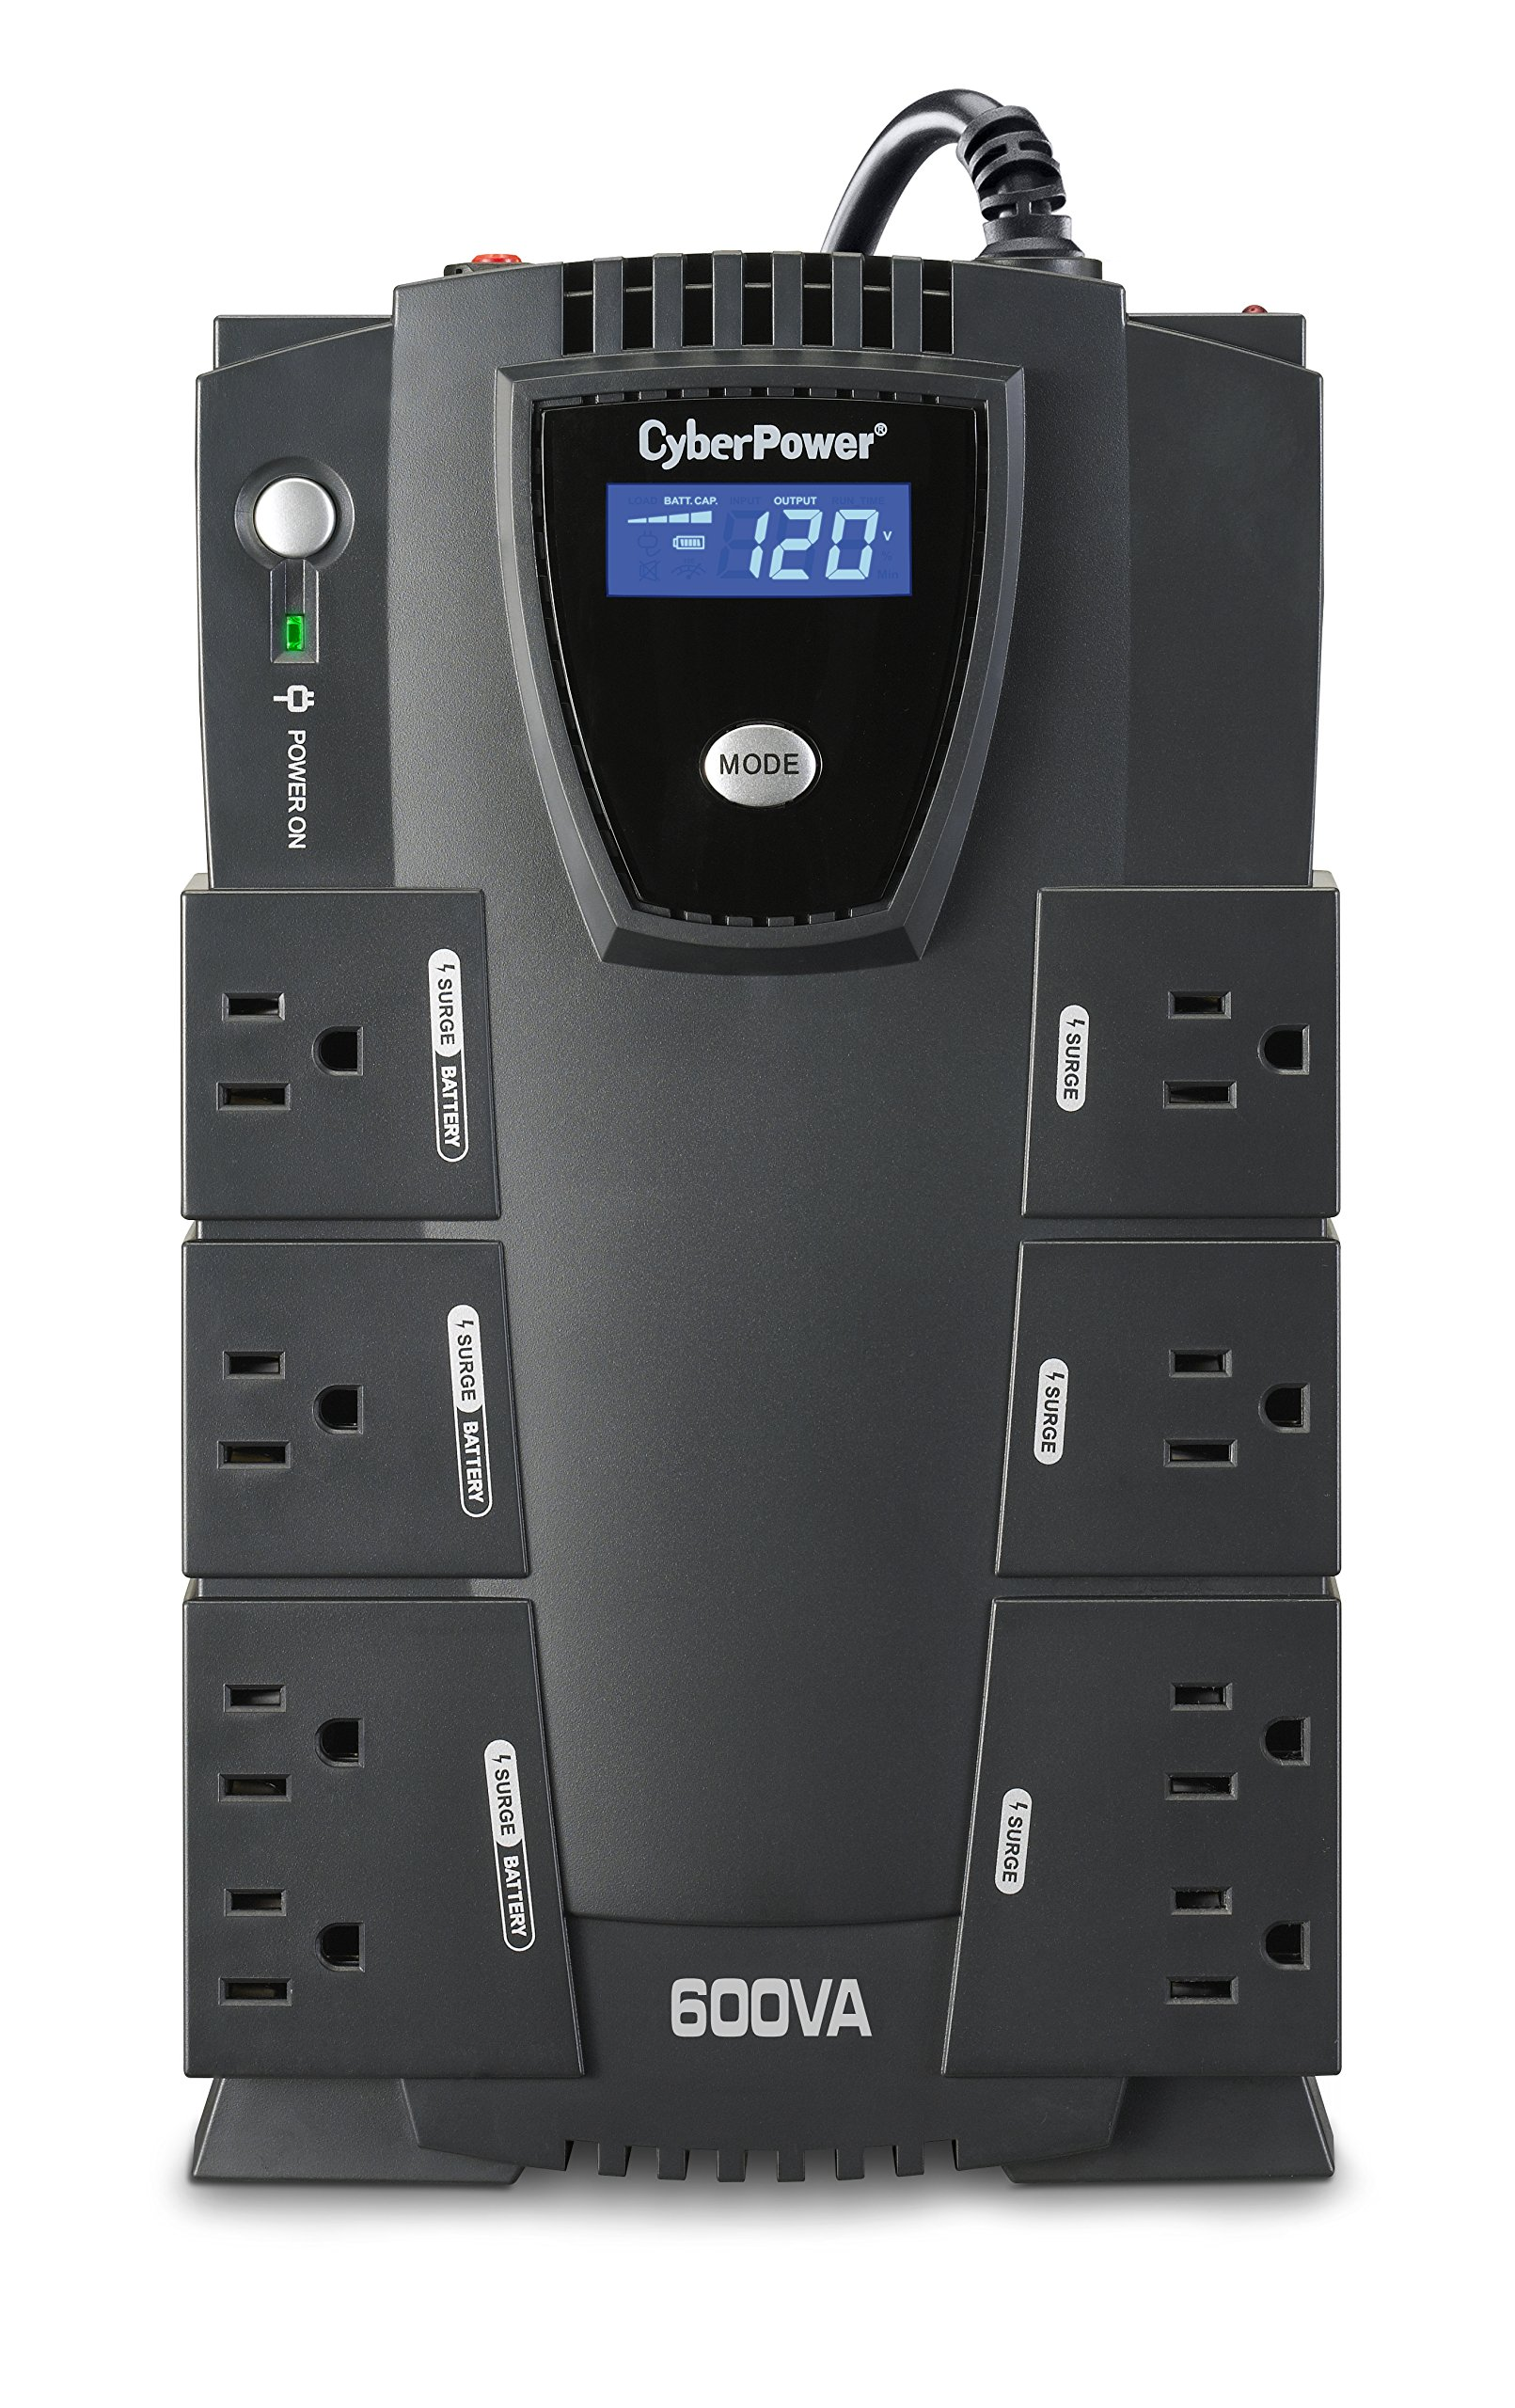 CyberPower CP600LCD Intelligent LCD UPS System, 600VA/340W, 8 Outlets, Compact by CyberPower